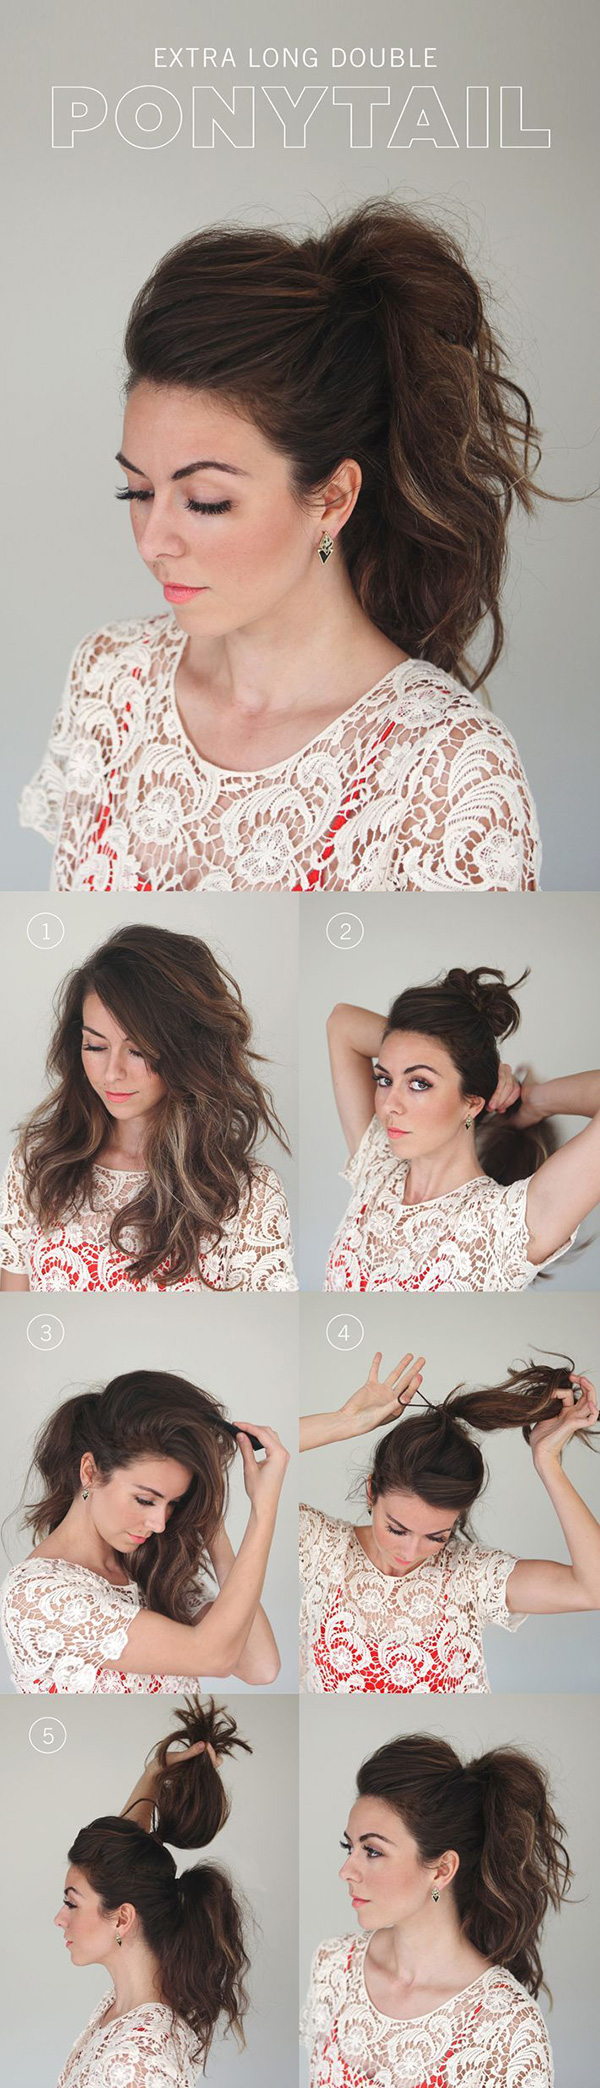 make-it-wavy-by-using-a-heat-iron-make-a-puff-and-divide-your-hair-into-two-halves-tie-the-two-halves-separately-to-create-a-perfect-double-ponytail-_vj3c